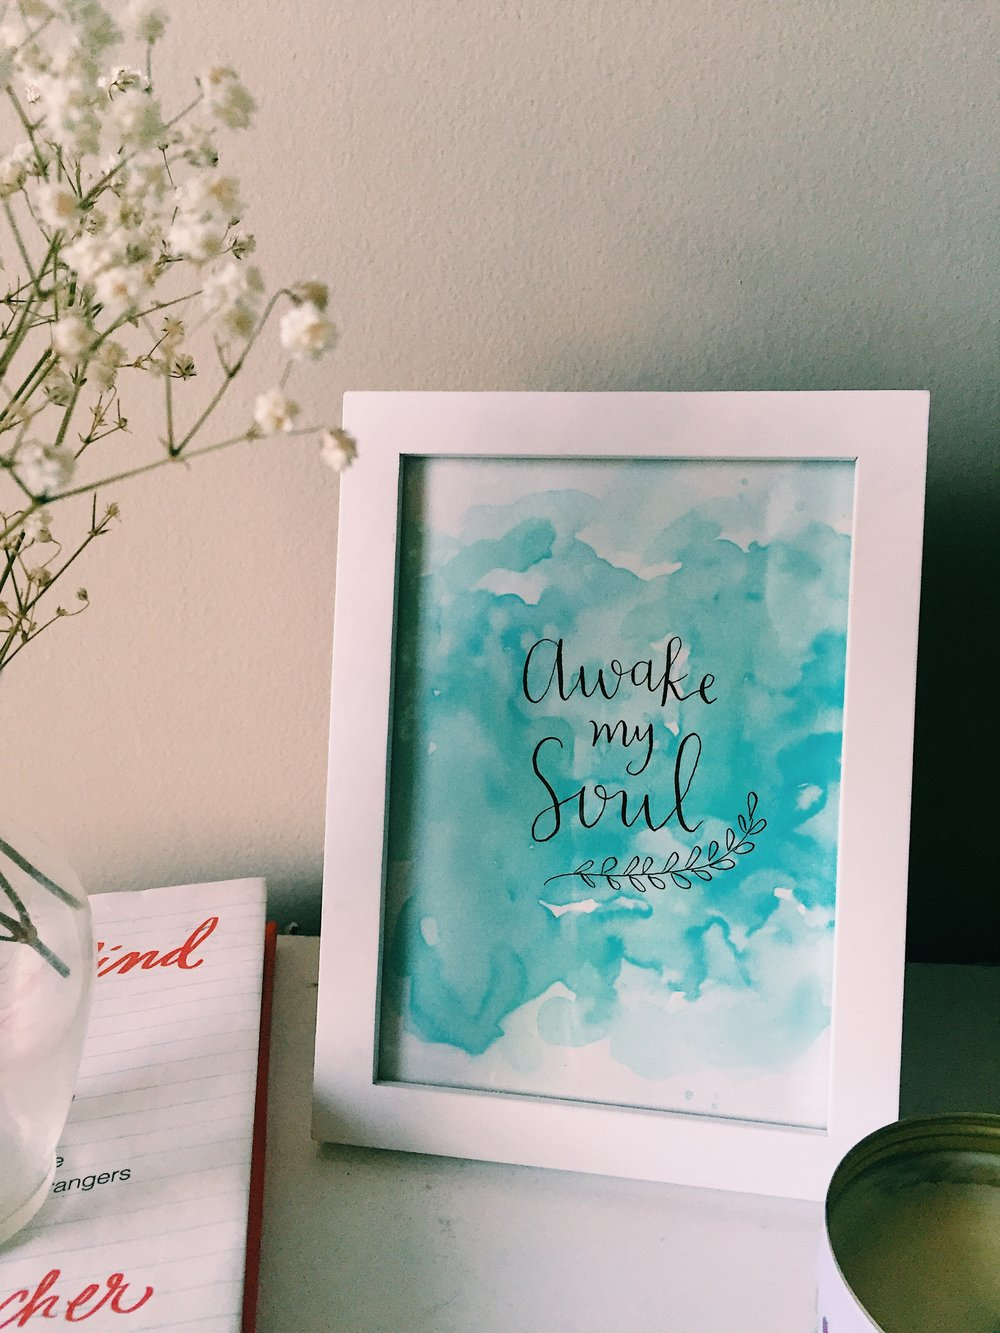 Receive this free downloadable Awake My Soul watercolor print with any Windrose purchase now through Tuesday at midnight!